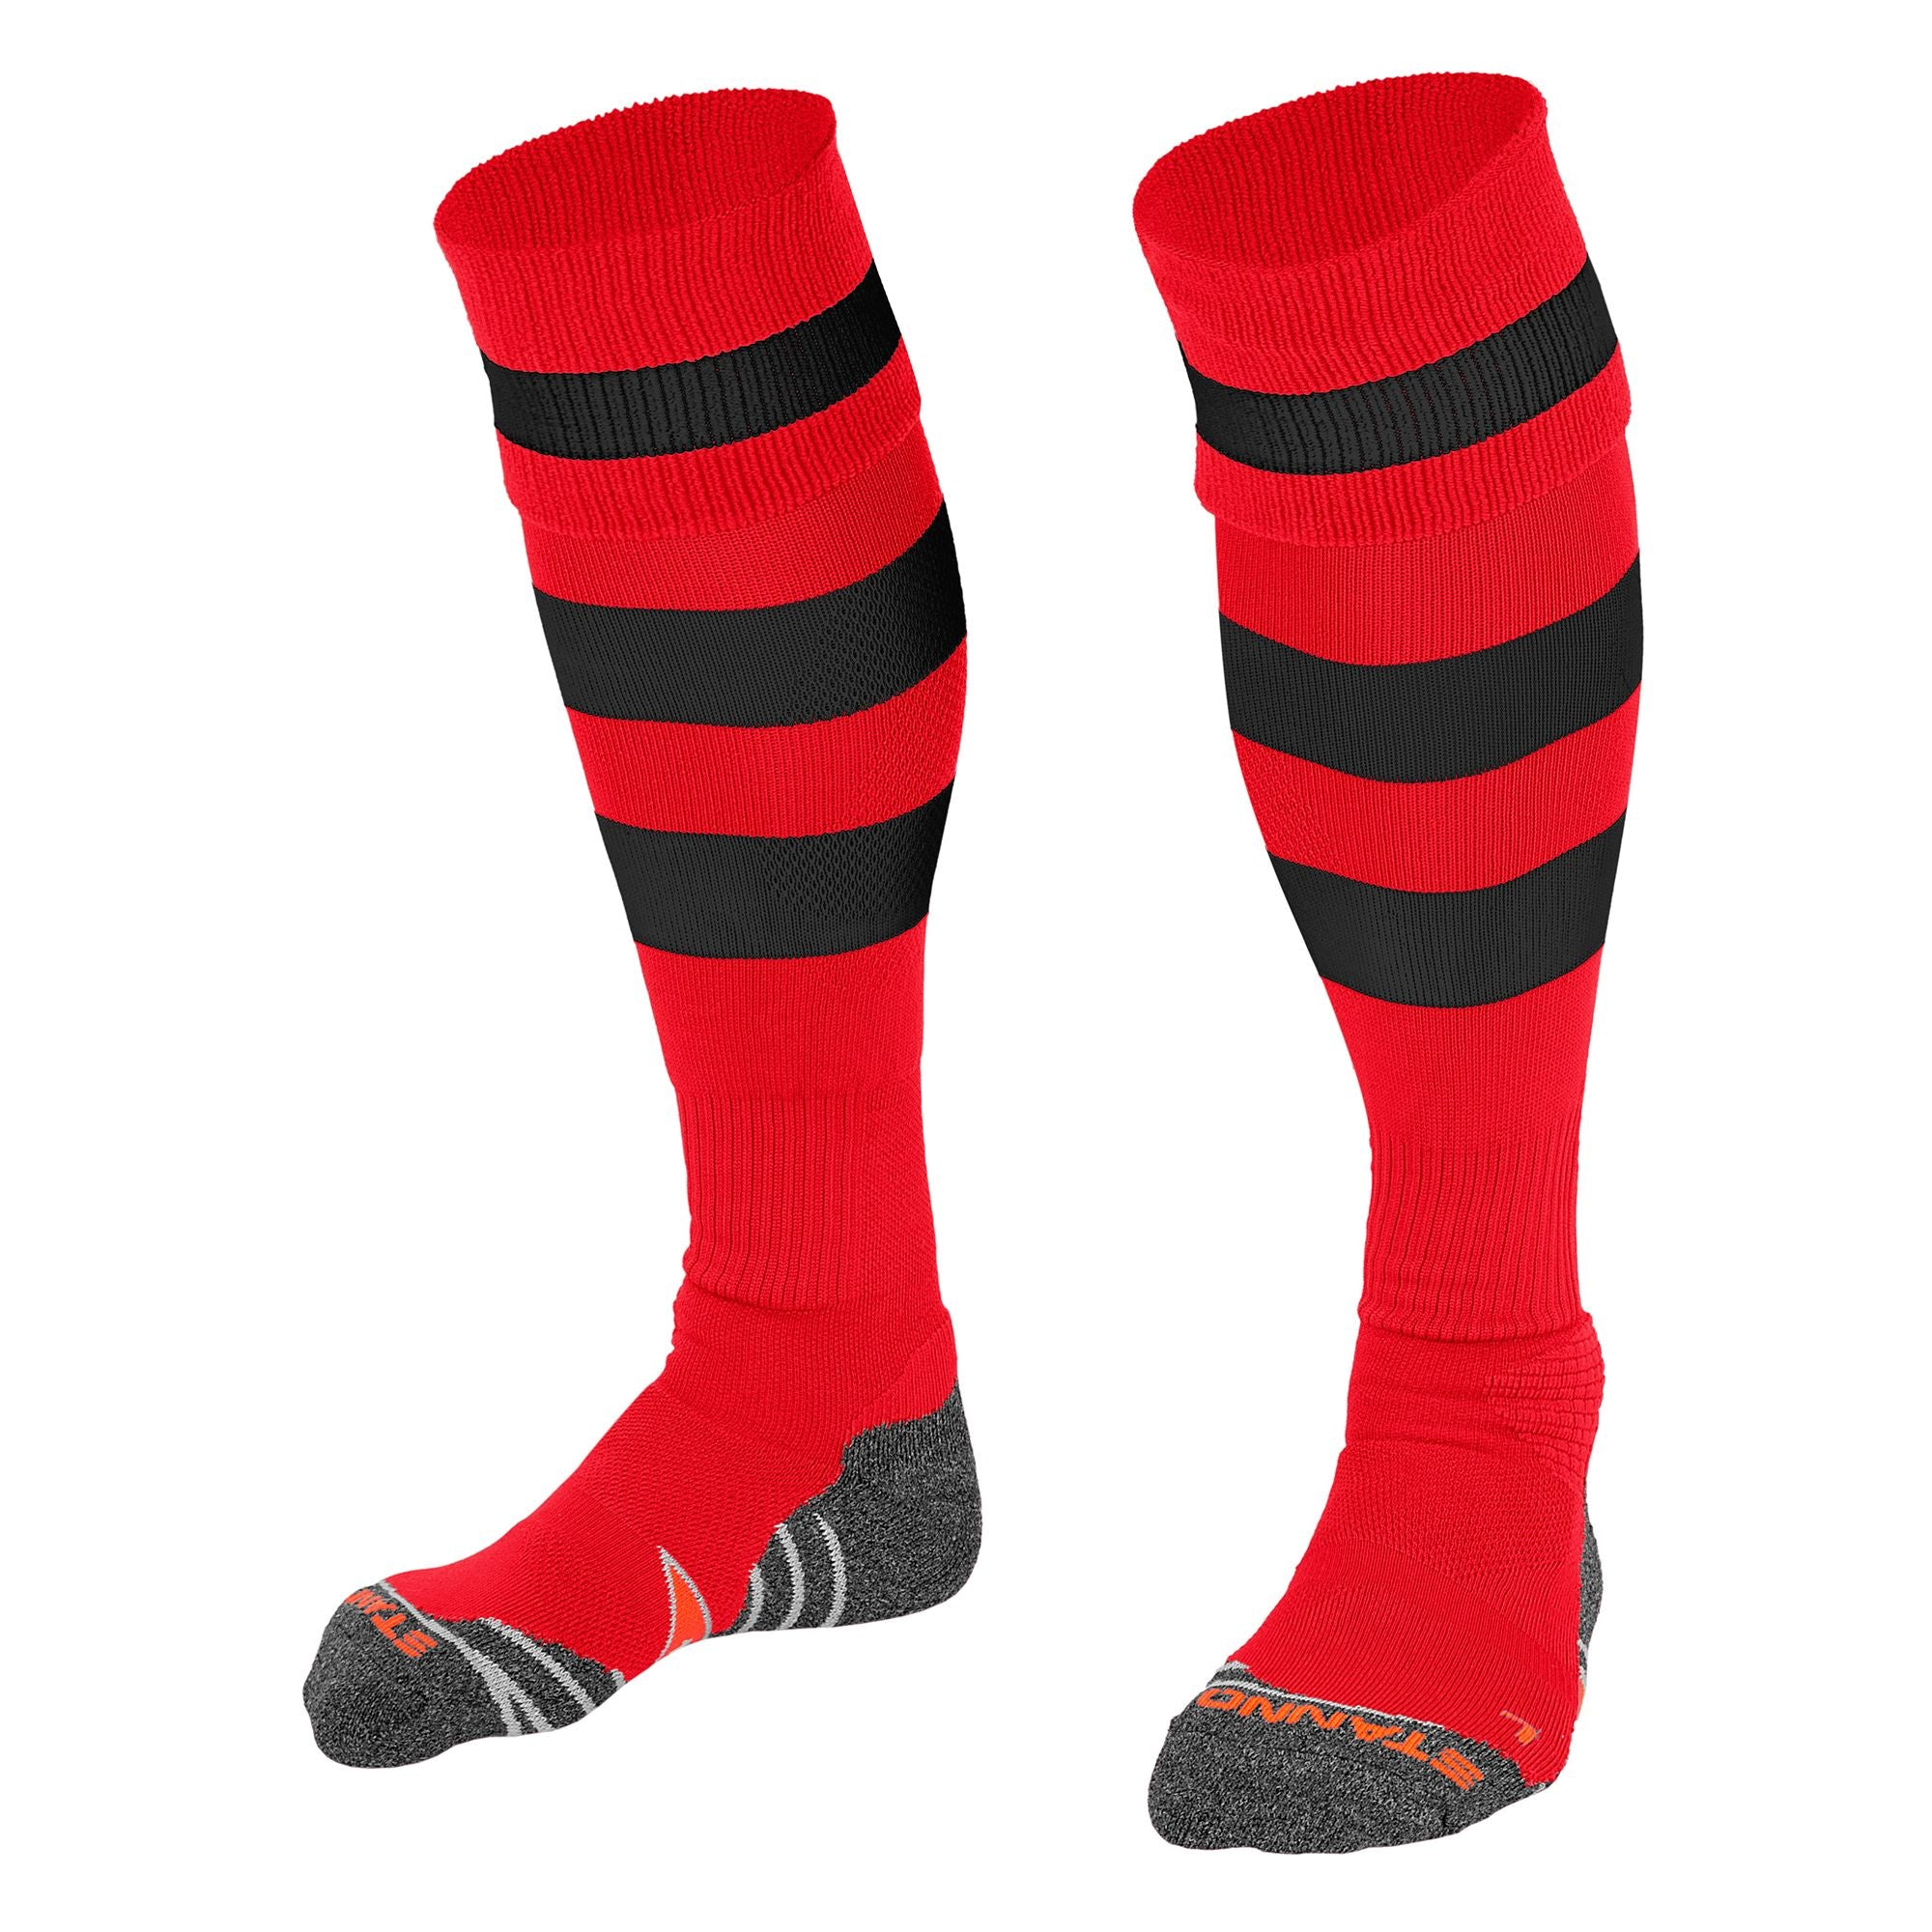 Stanno Original sock in red with 2 thick horizontal black stripes through the centre of the sock and one on the turnover. d